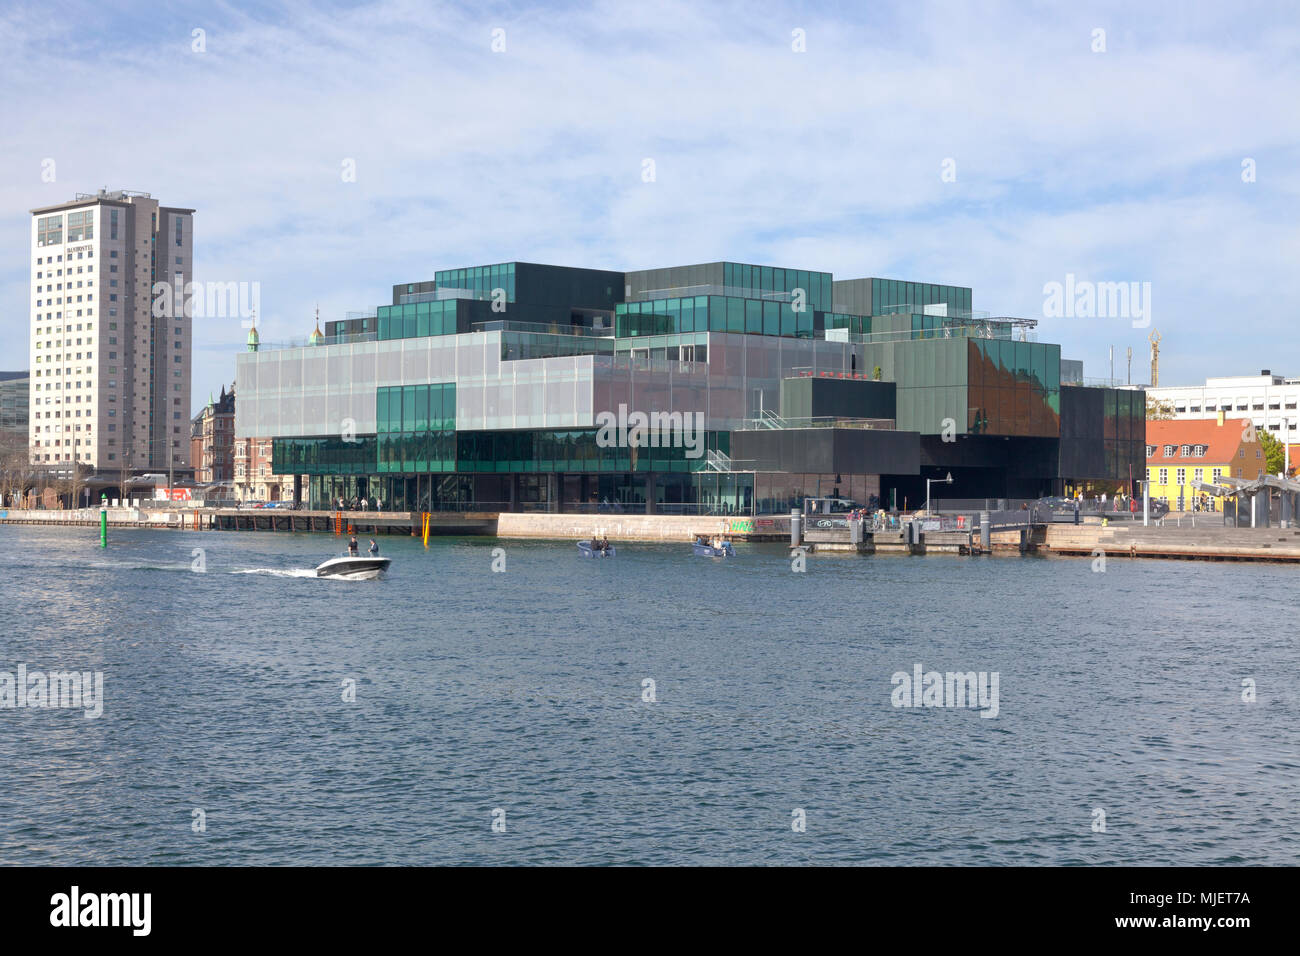 Copenhagen, Denmark. 5th May, 2018. The BLOX building, a new prestige building for architecture and design at the waterfront at Frederiksholm Canal next to the Black Diamond in the inner harbour. The building houses the Danish Architecture Centre and a number of companies working with future solutions for cities. The building was inaugurated by H.M. Queen Margrethe II yesterday - today open house to a festive opening day. BLOX is the original name of the old brew-house property where it is situated. Credit: Niels Quist/Alamy Live News - Stock Image